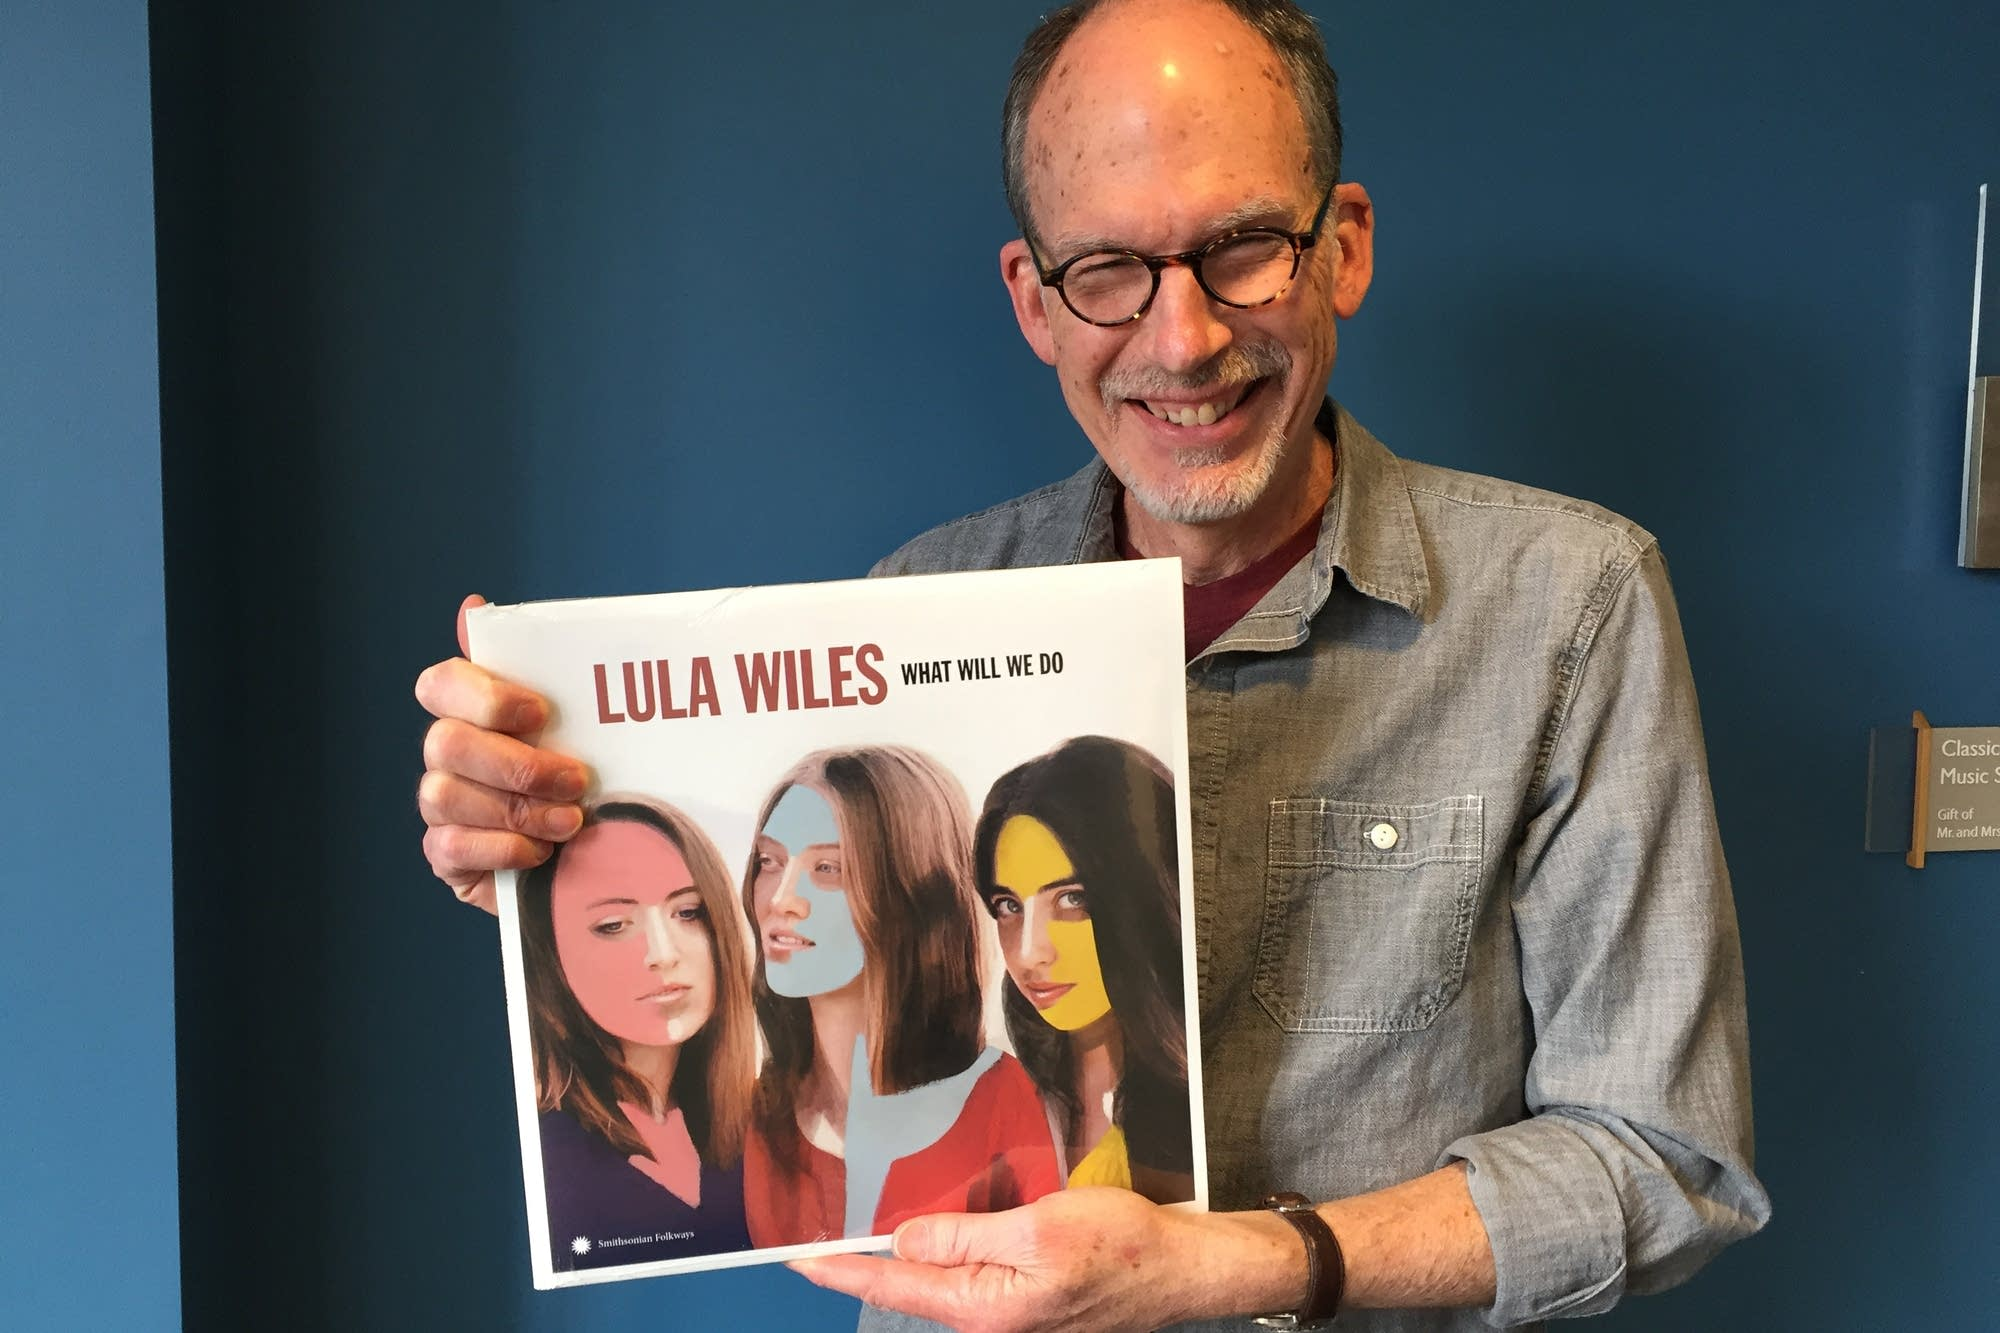 Mike Pengra with Lula Wiles' album, 'What Will We Do'